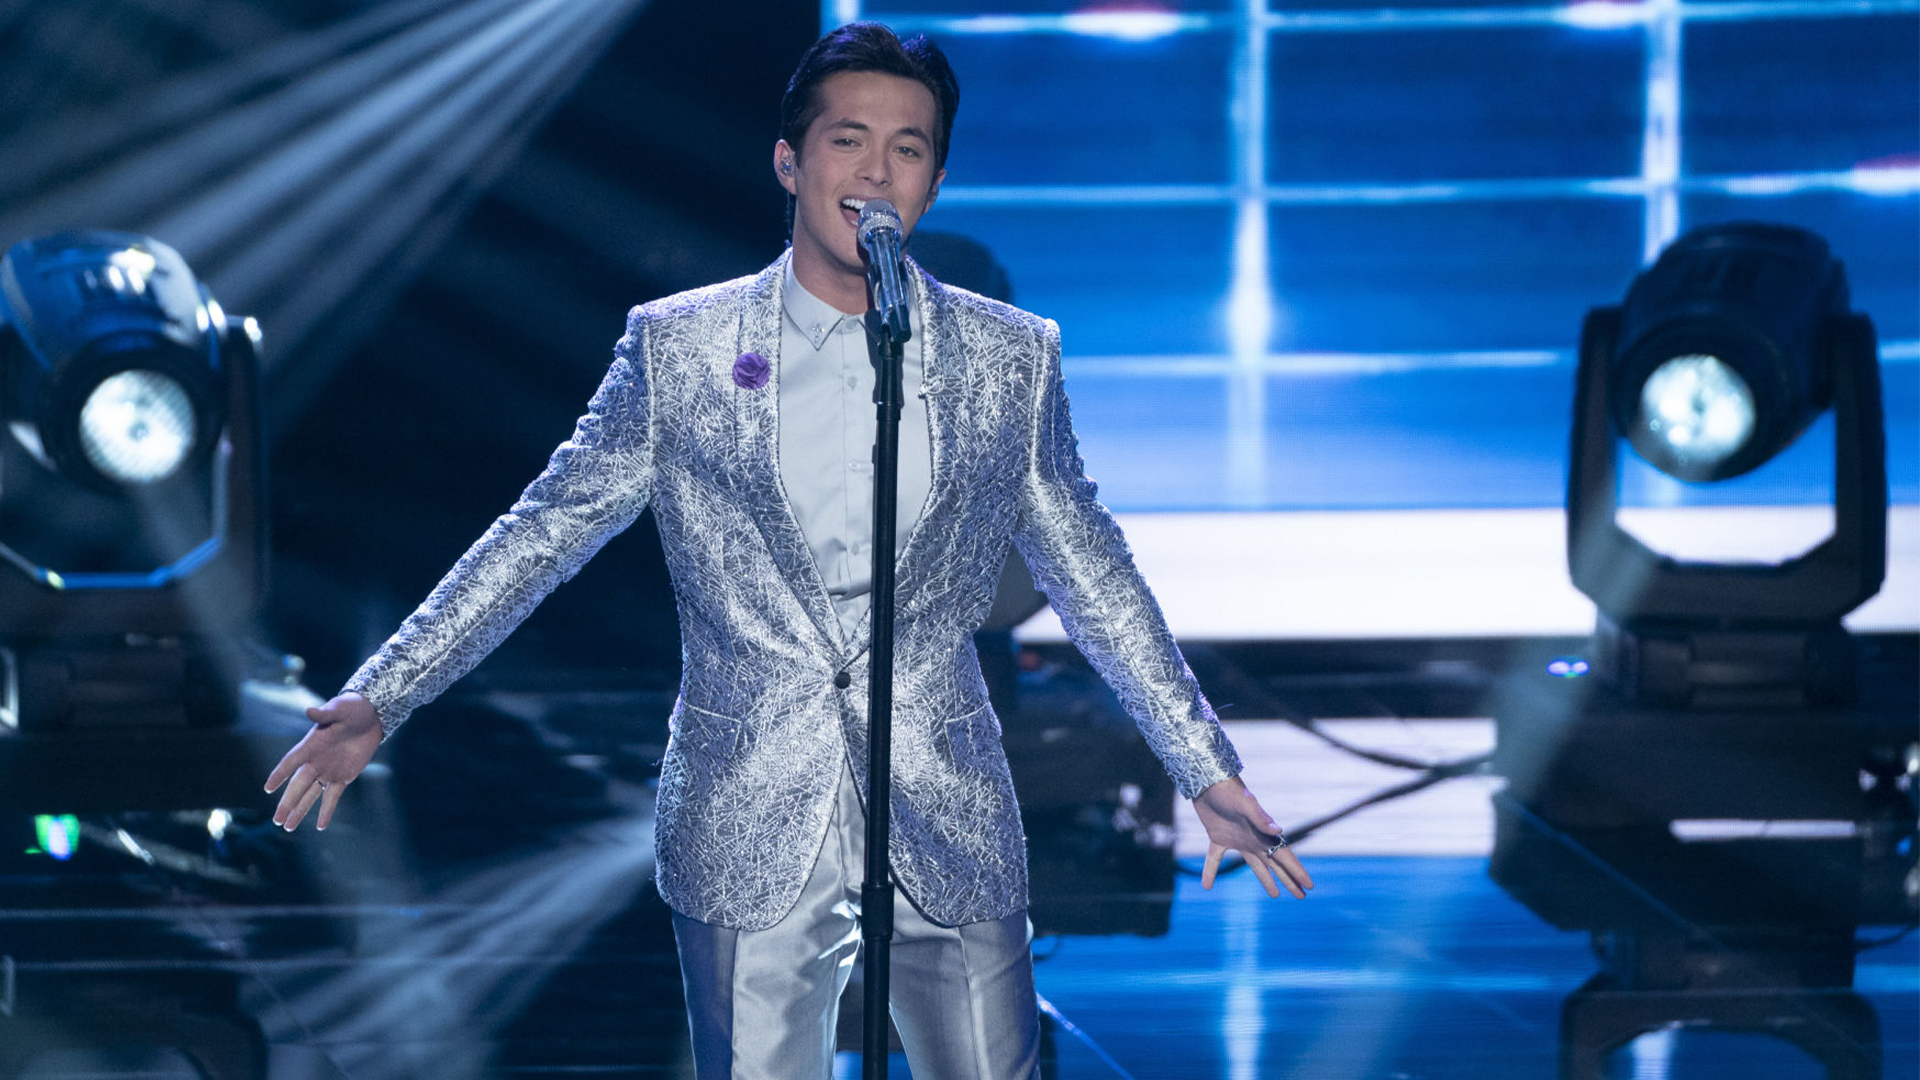 On to the finale- Laine Hardy's American Idol dream continues, advances to the show's finale_1557775727678.jpg.jpg